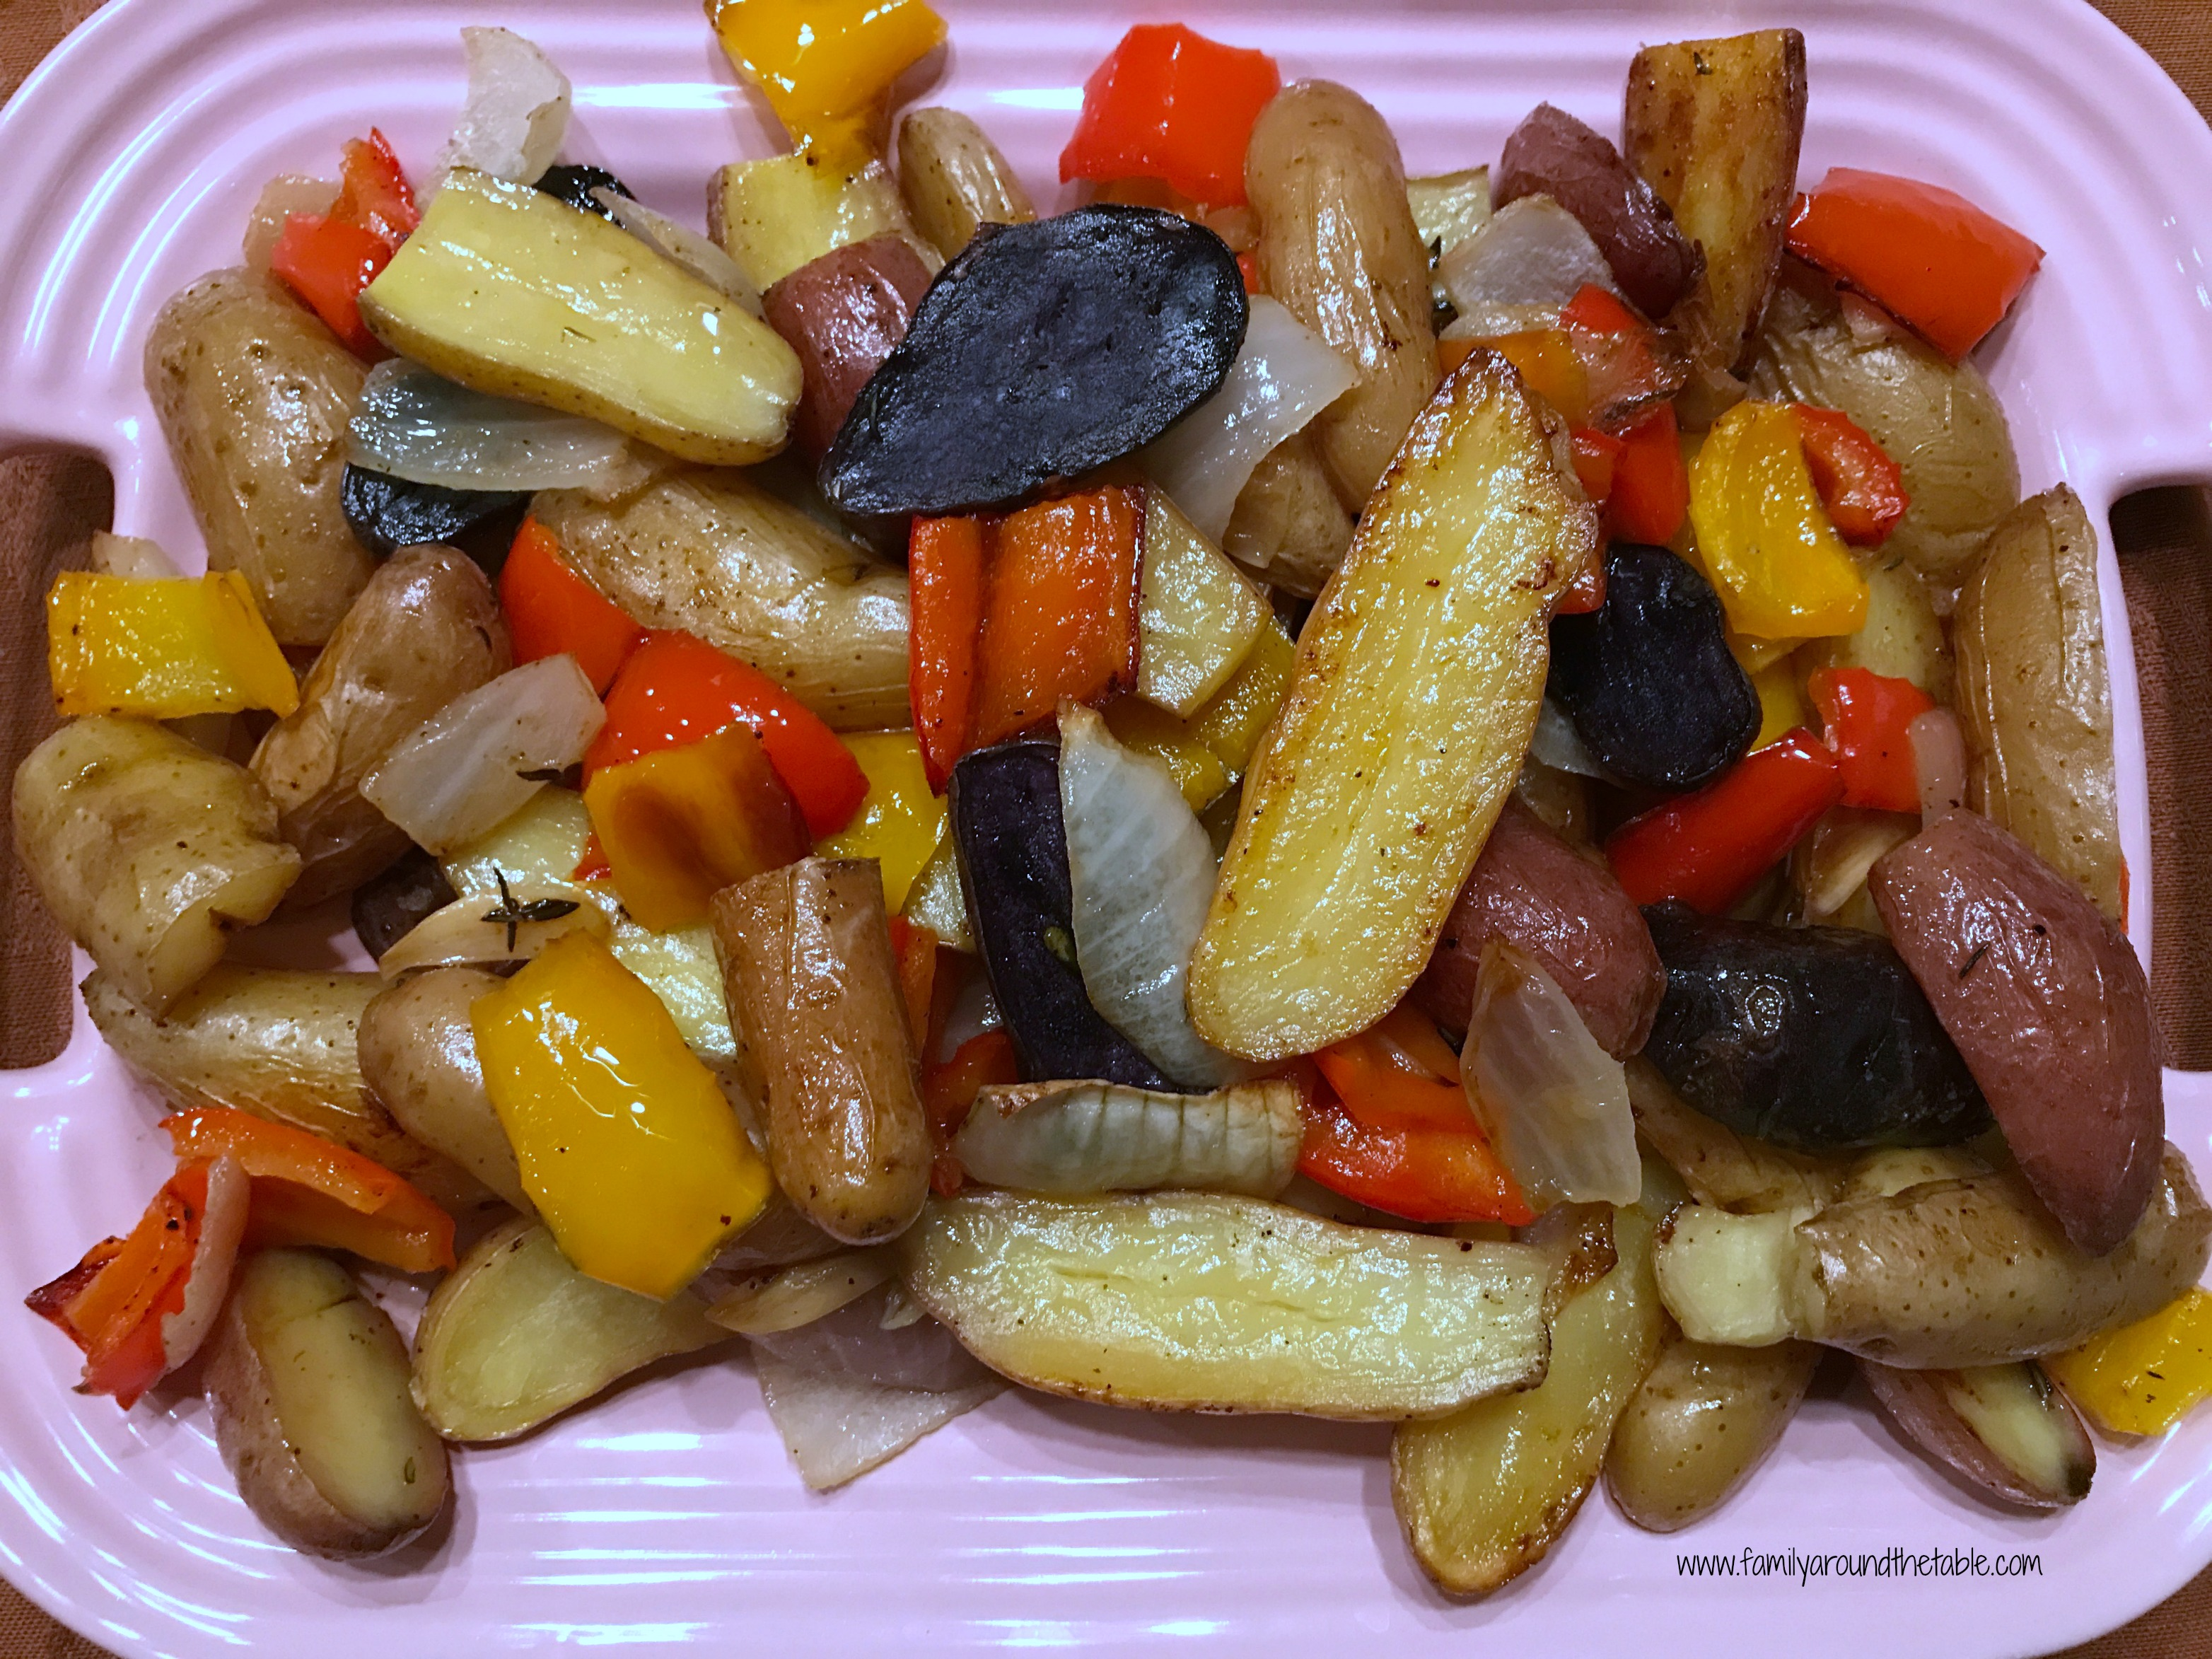 Fingerling potatoes roast up nicely and are delicious when included a medley with peppers and onions.